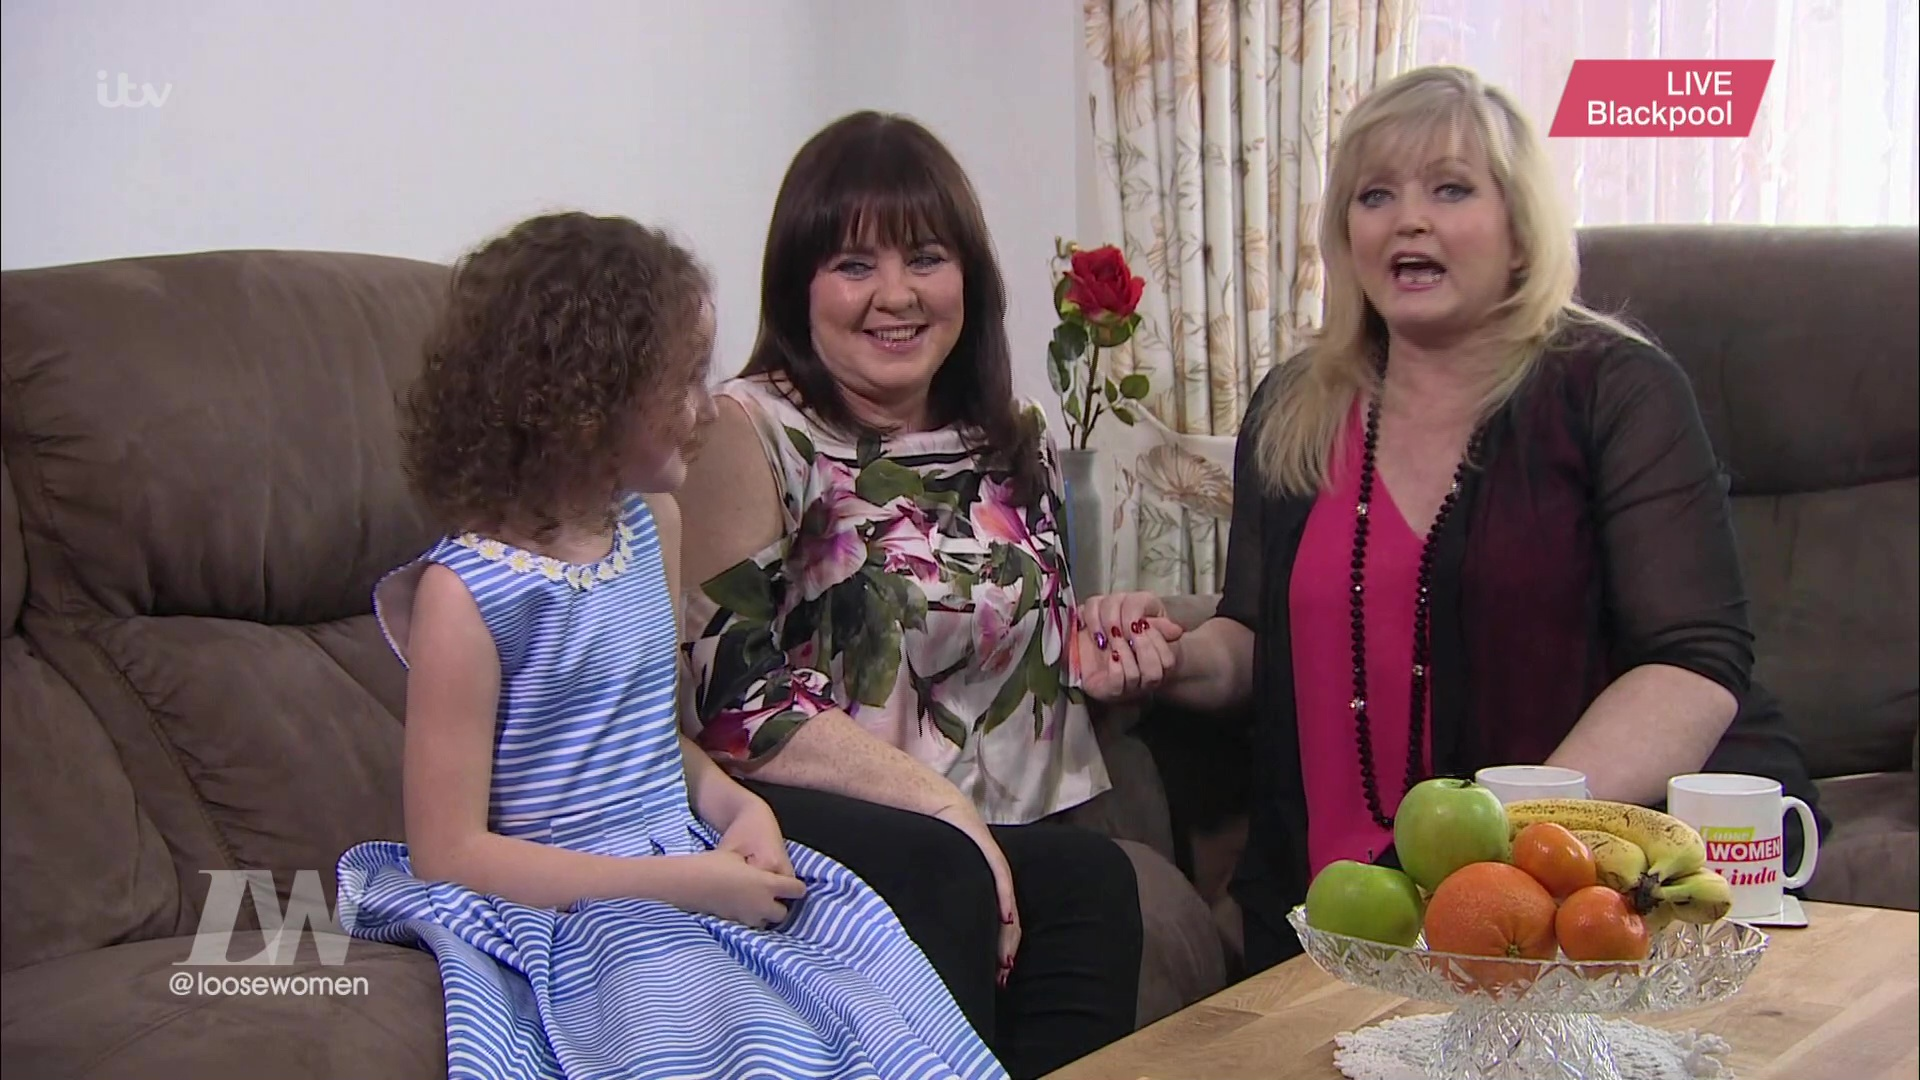 Linda Nolan's niece Ava 'hero of the day' for helping during accident that would lead to shock cancer diagnosis